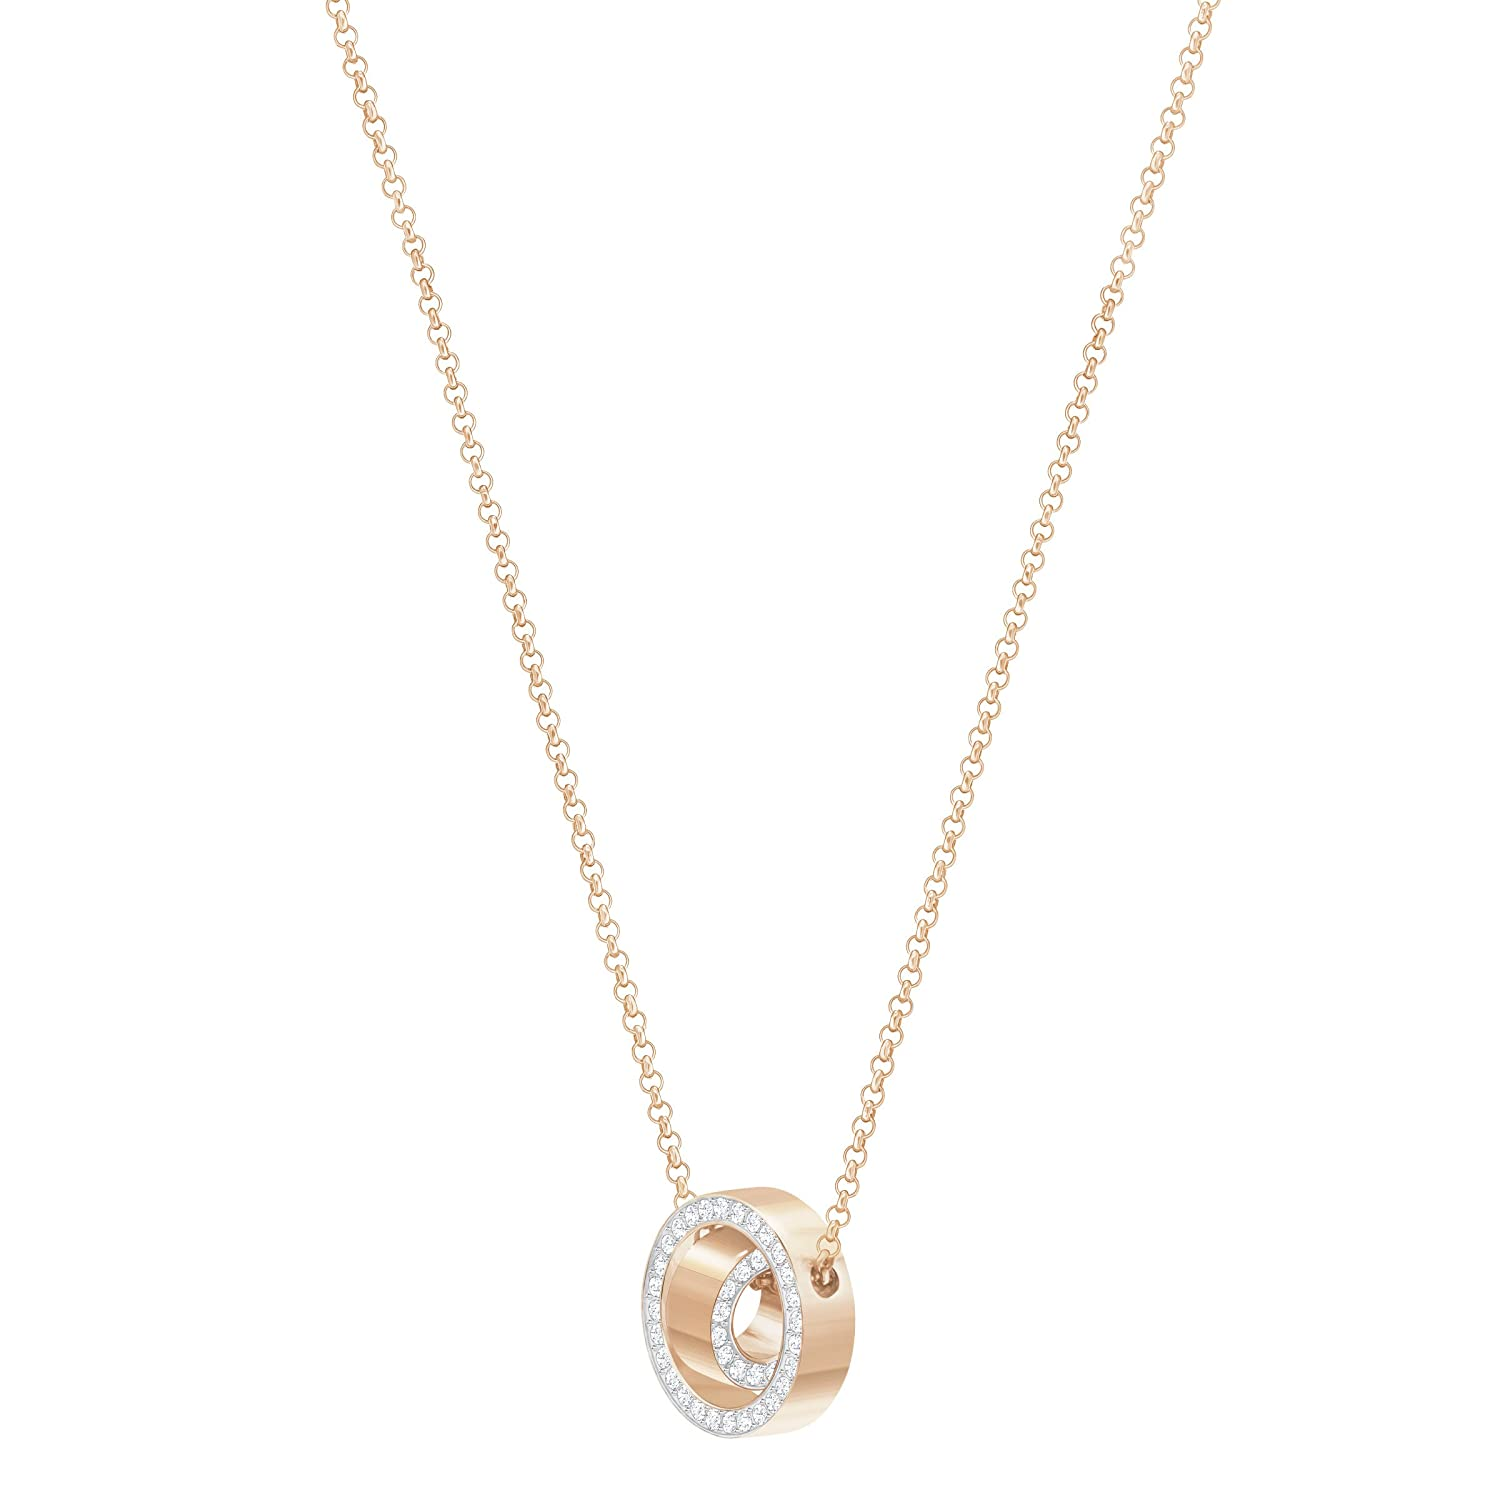 2e3b41f3a Amazon.com: Swarovski Crystal Small White Rose Gold-Plated Hollow Pendant  Necklace: Jewelry